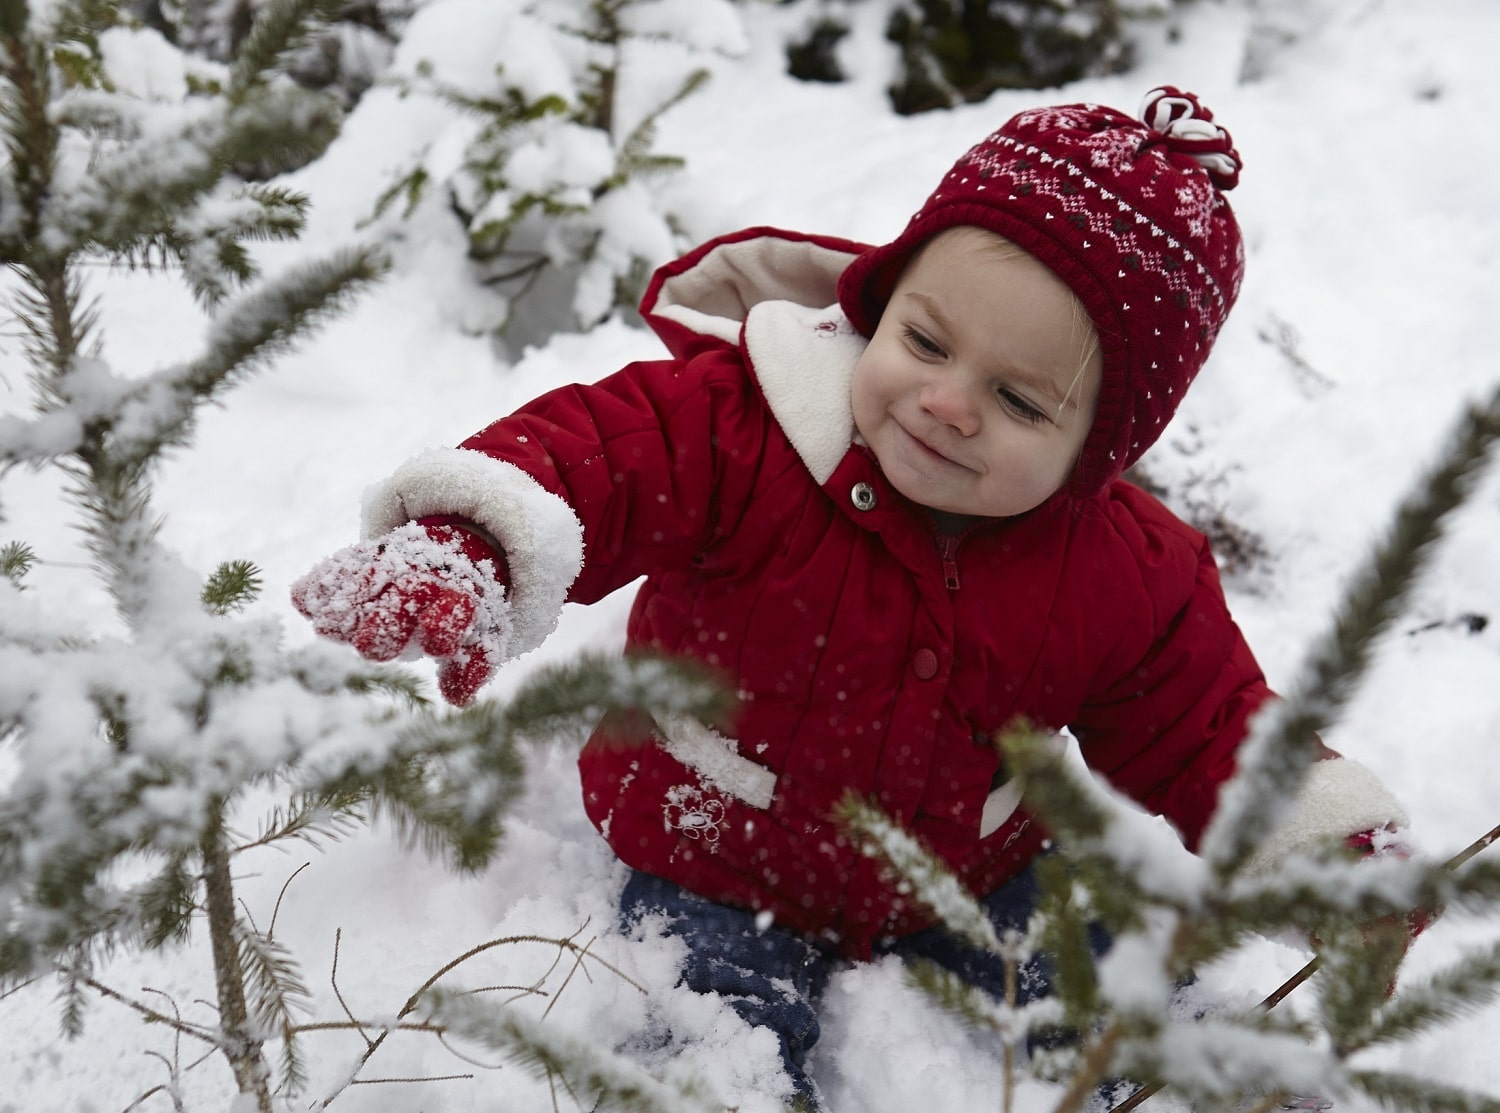 Toddlers Have Knocked Christmas Trees - 5 Tips for Planning Your Child's First Christmas